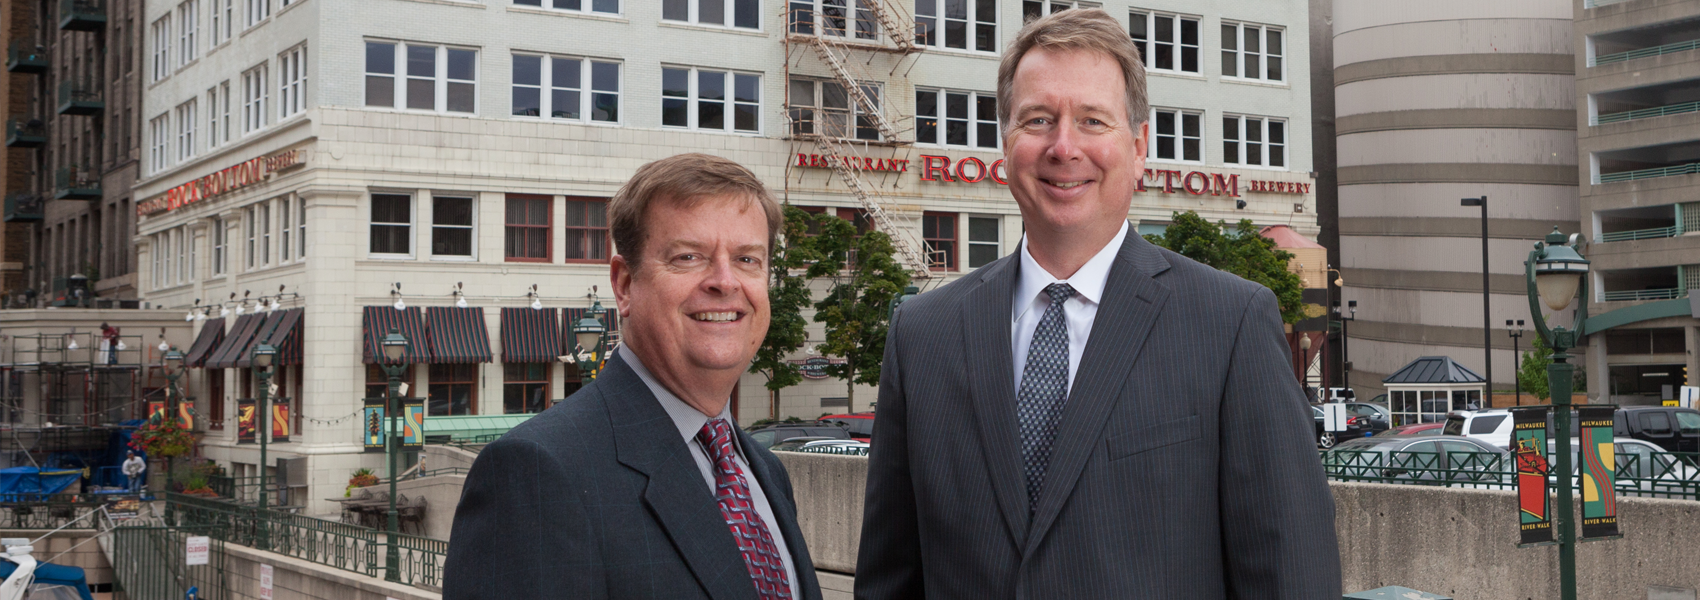 Miller & Ogorchock S.C. Attorneys at Law